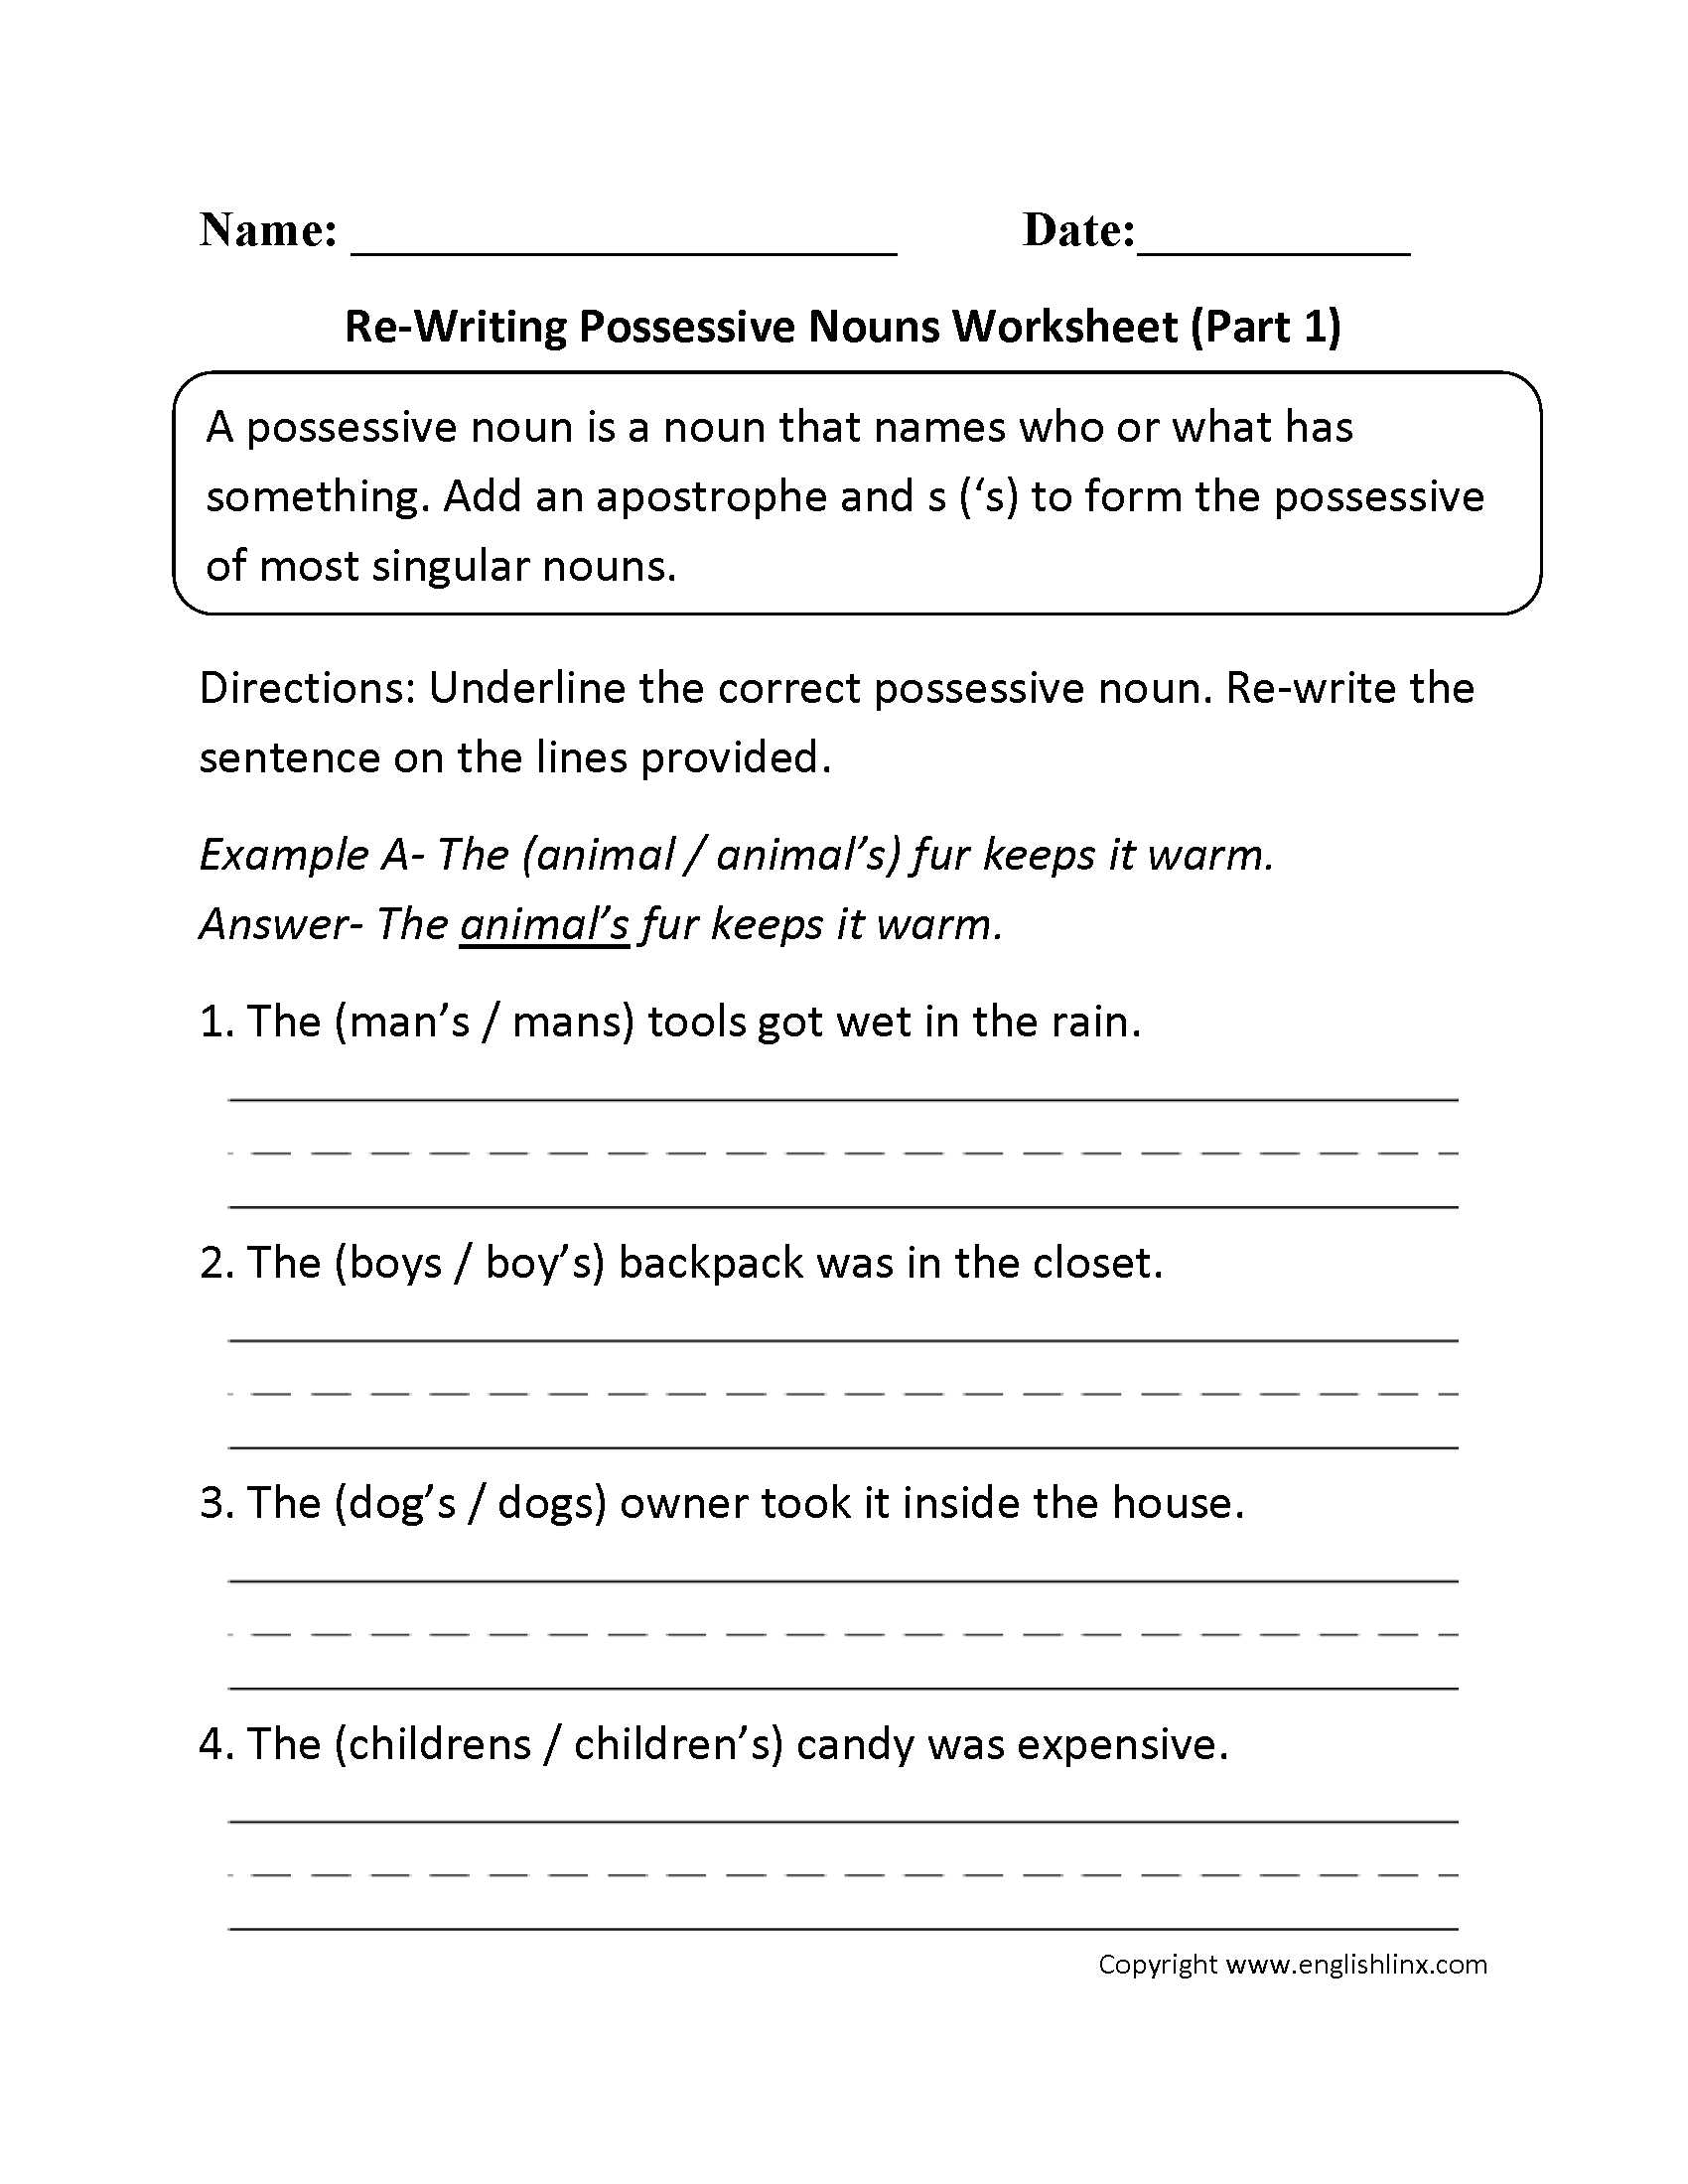 Possessive Nouns Worksheet Singular And Plural Nouns